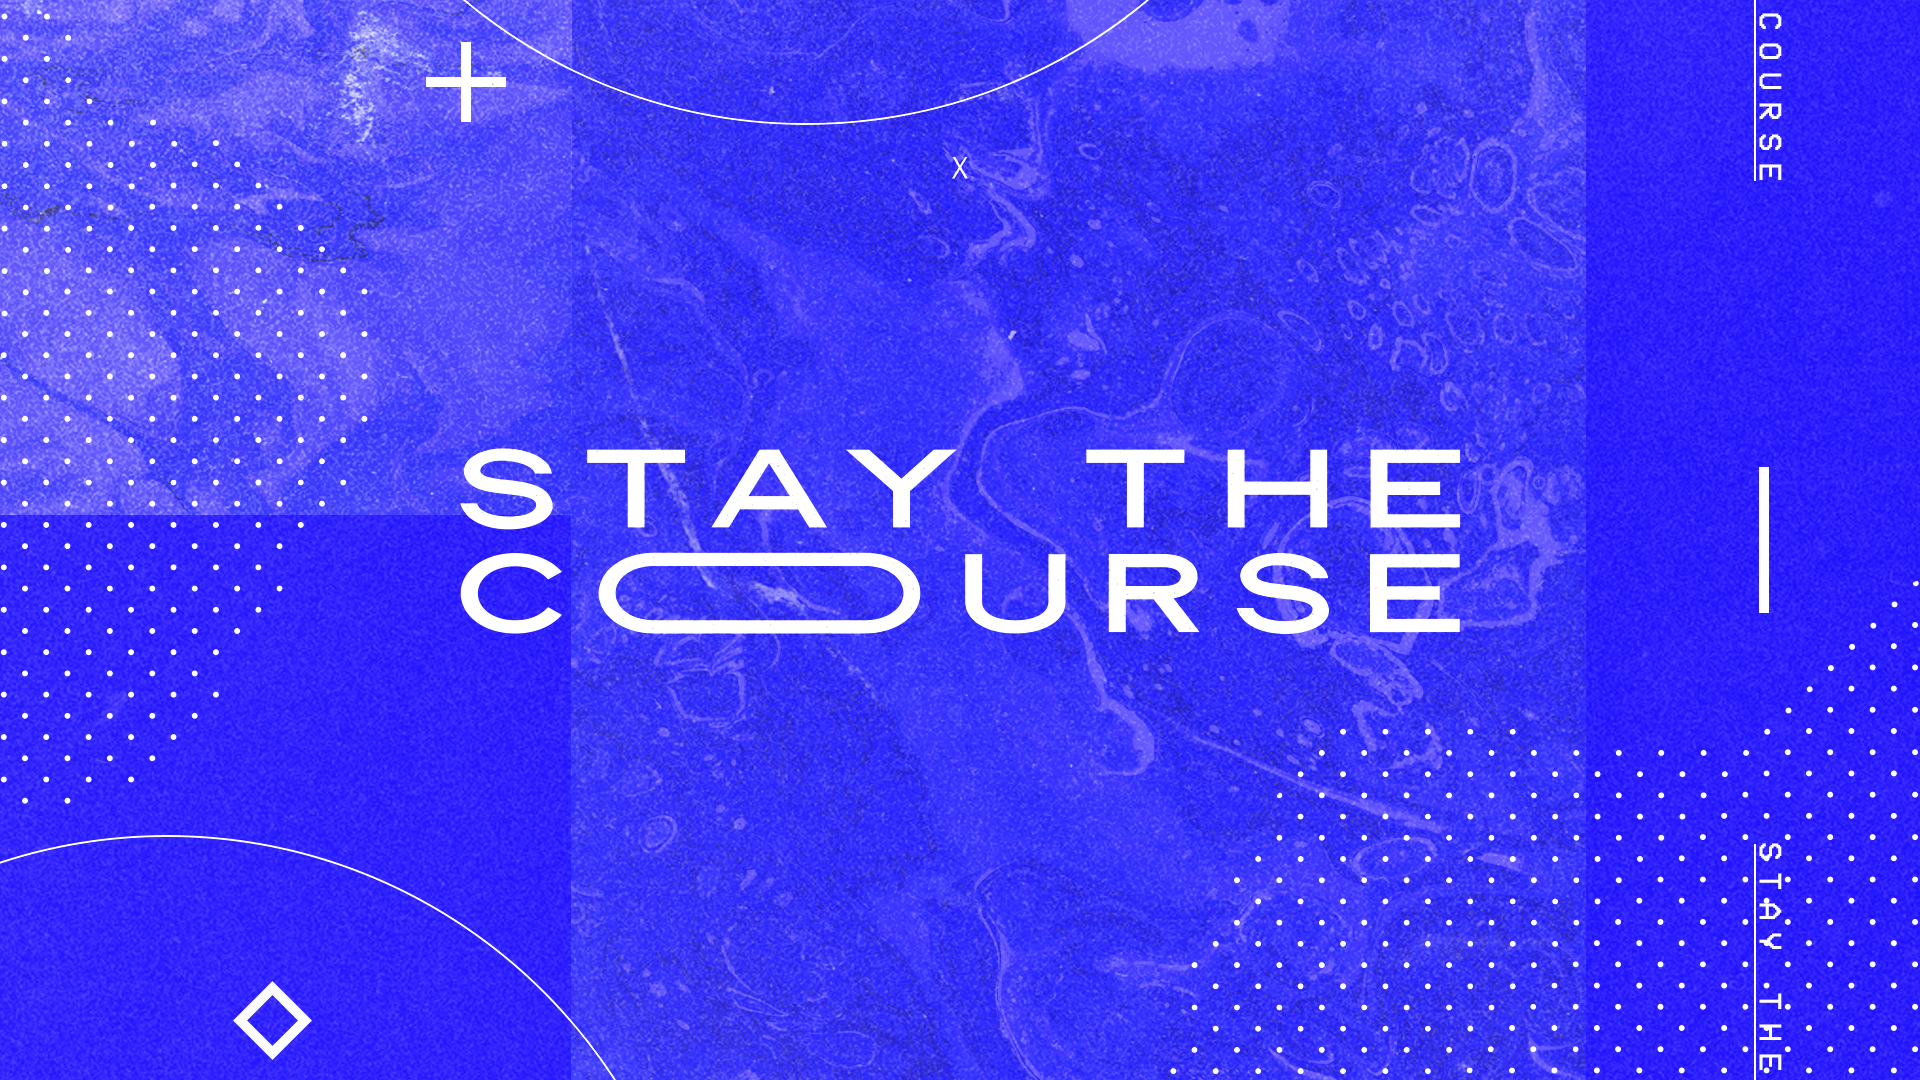 09_Stay The Course_main2.jpg